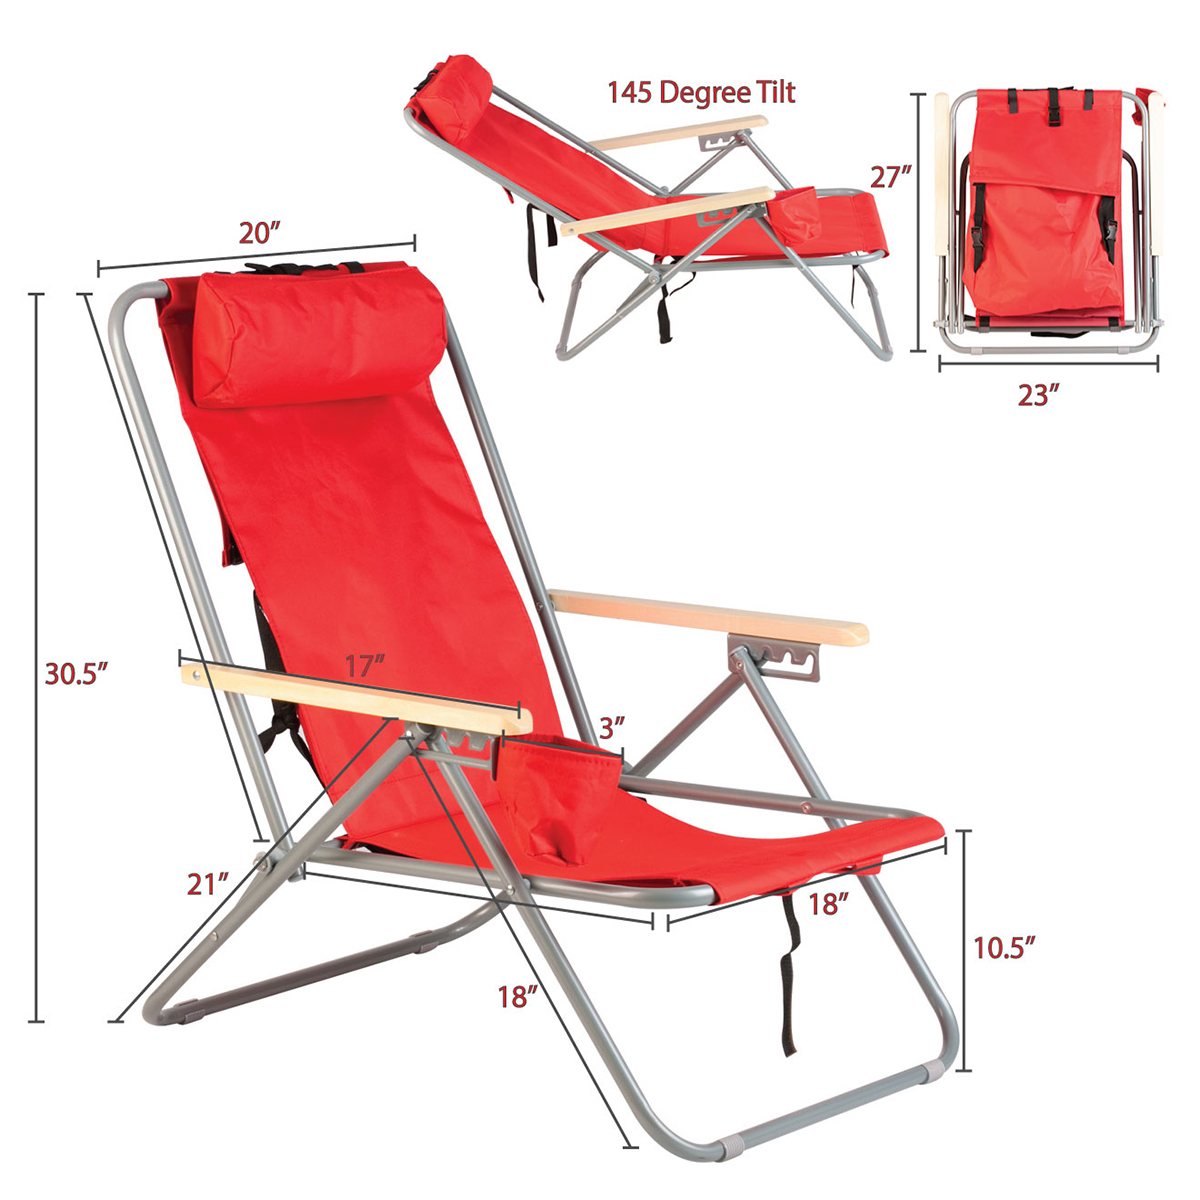 Portable Beach Chair Portable Chair Backpack Beach Chair Folding Red Solid